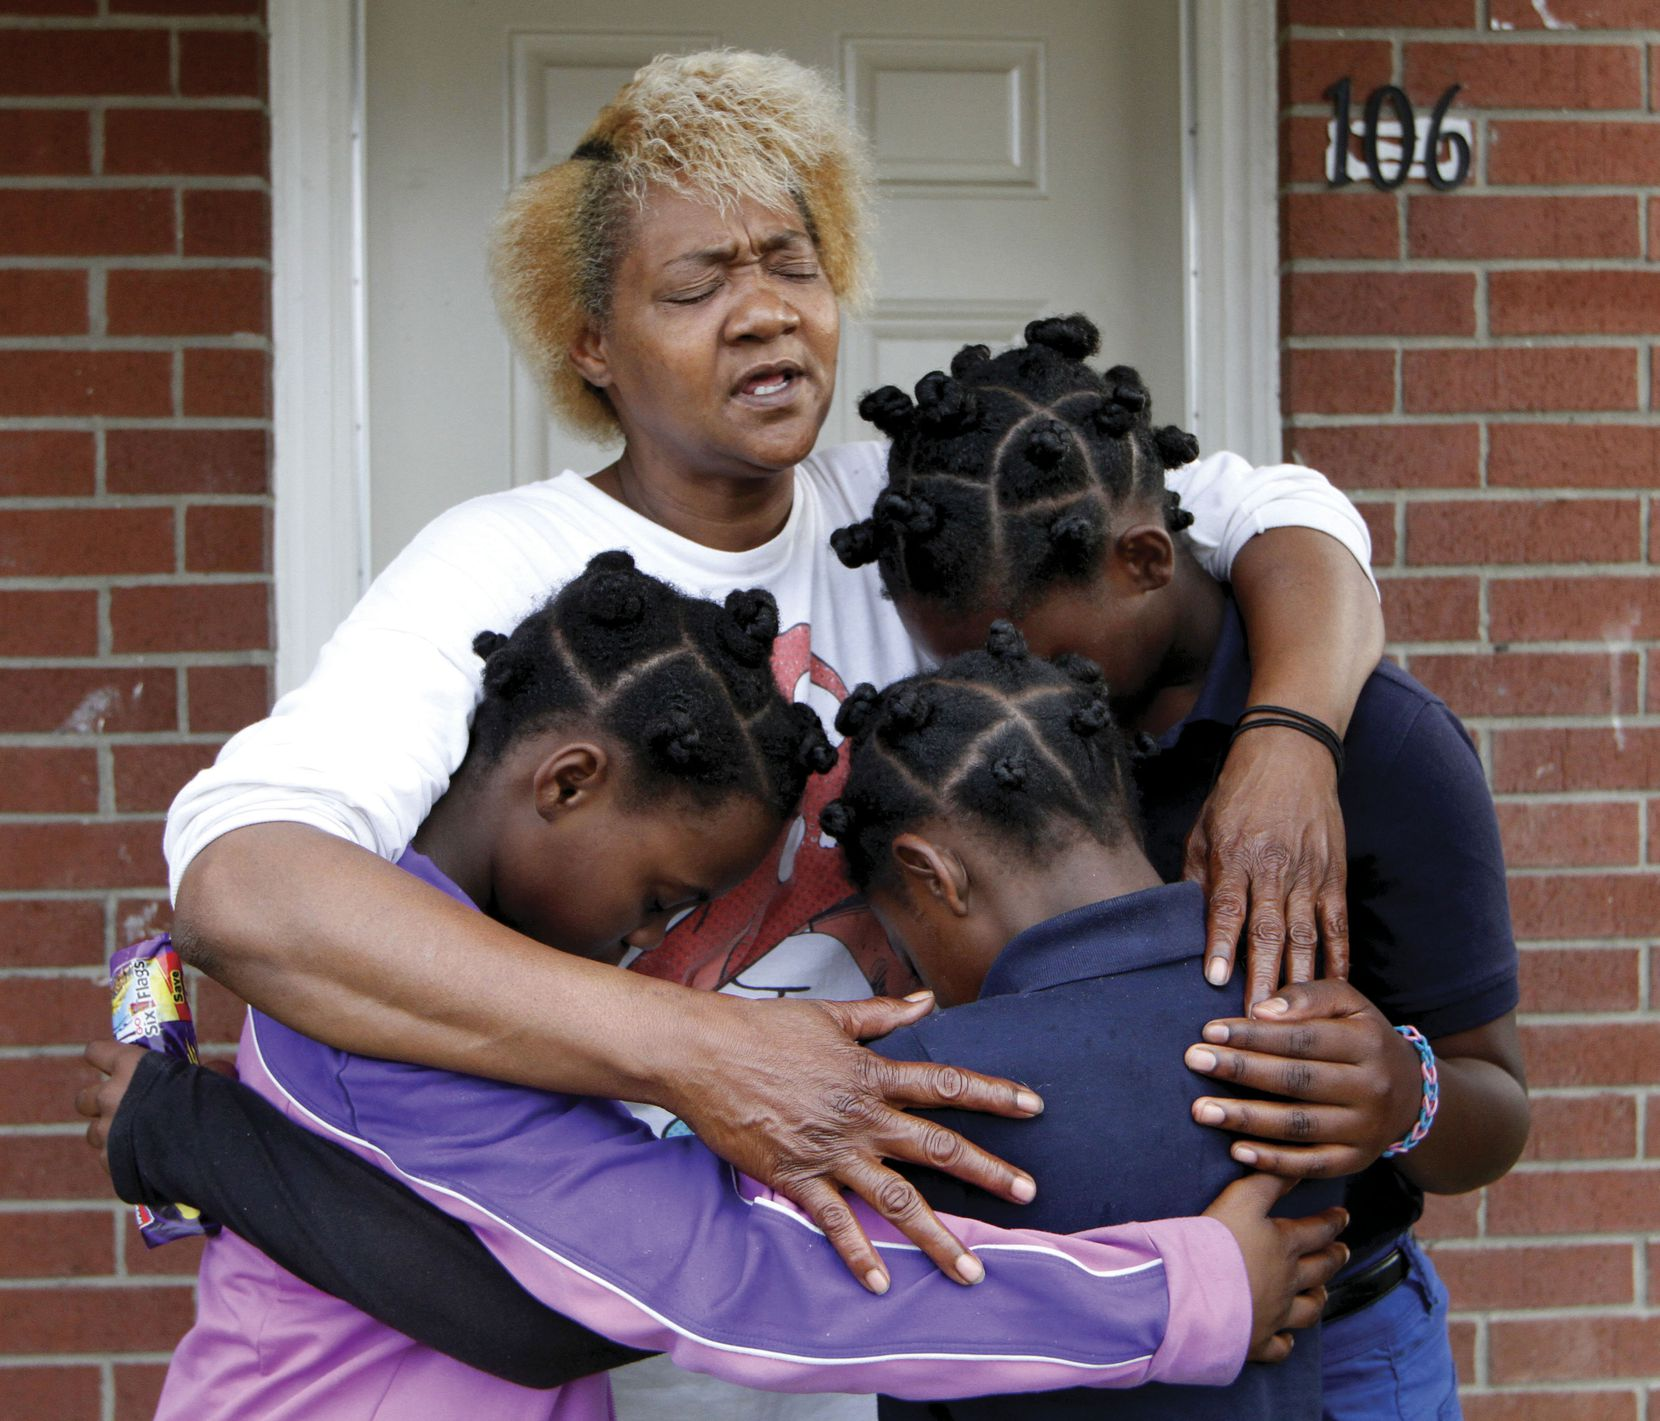 Paula Wooten prays with her grandchildren A'avryanna Wooten (left), 10, I'ivryanna Wooten (center), 9, and R'reanna Wooten, 11, in front of their Dallas Housing Authority apartment before they walk to school at George W. Carver Creative Arts Learning Center.